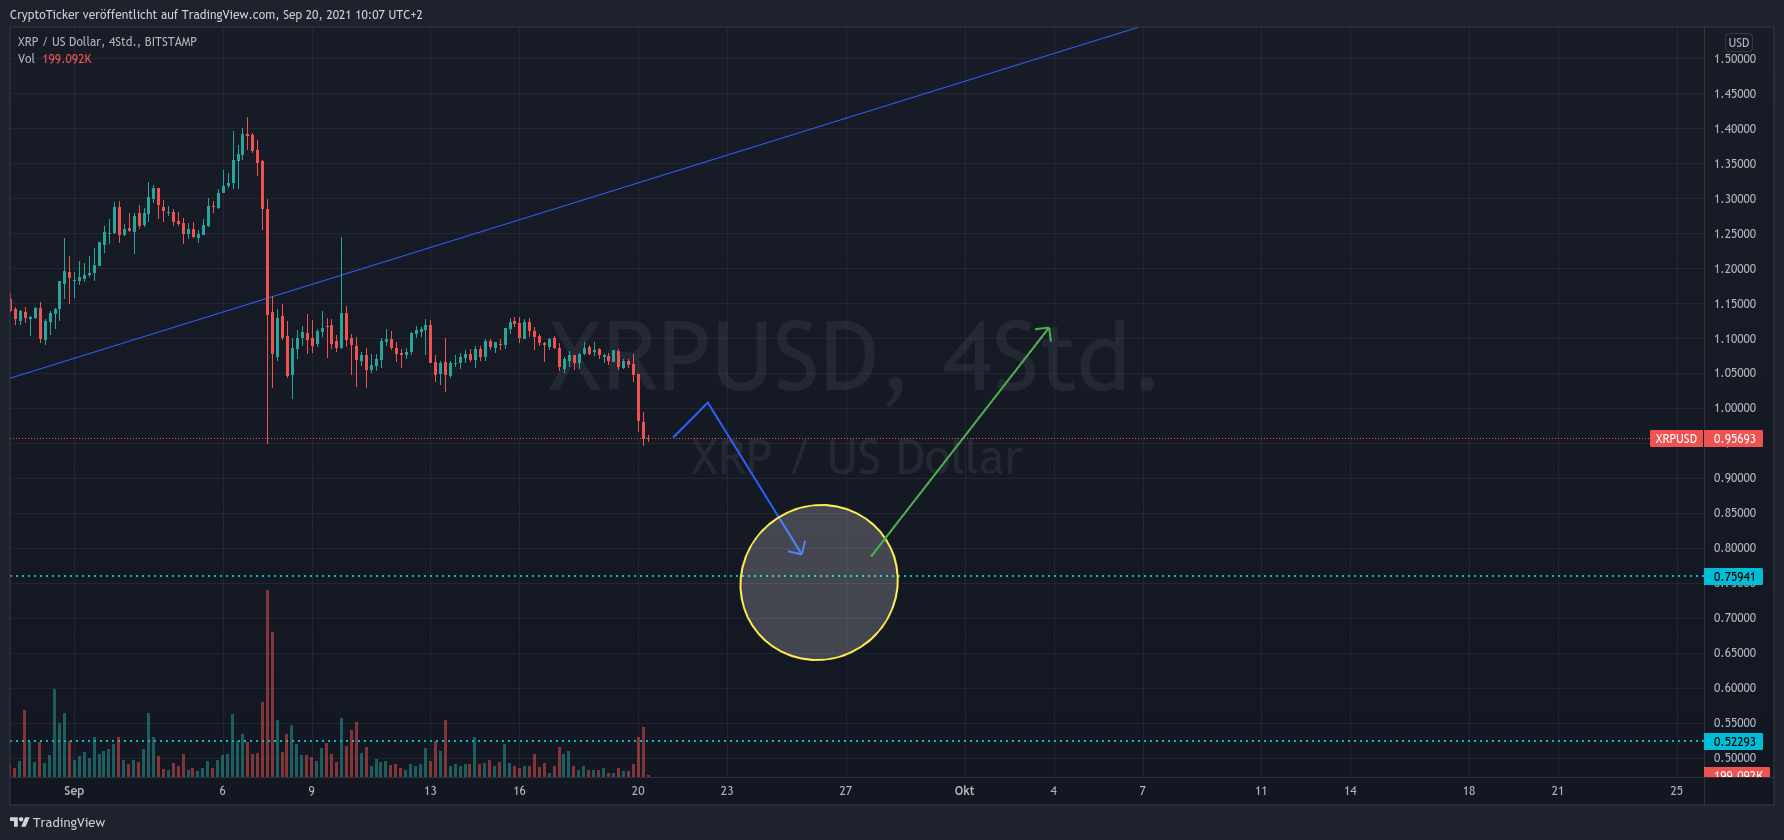 XRP/USD 4-hours chart showing a further dip for XRP